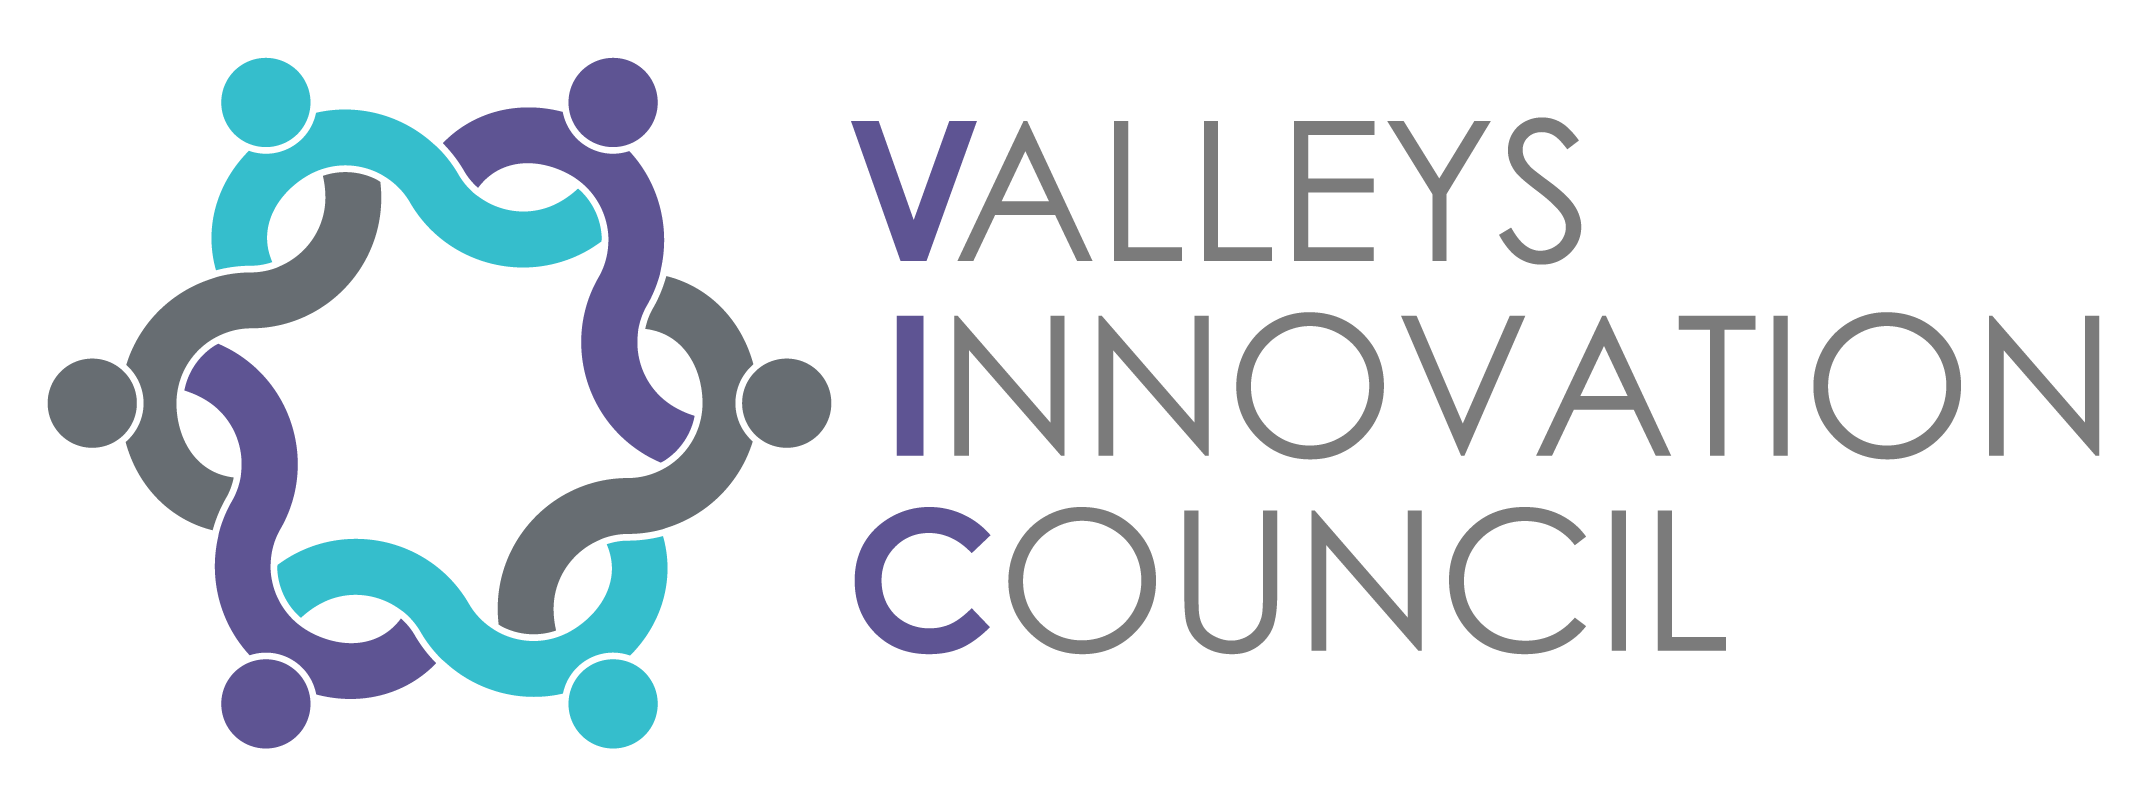 Valleys Innovation Council